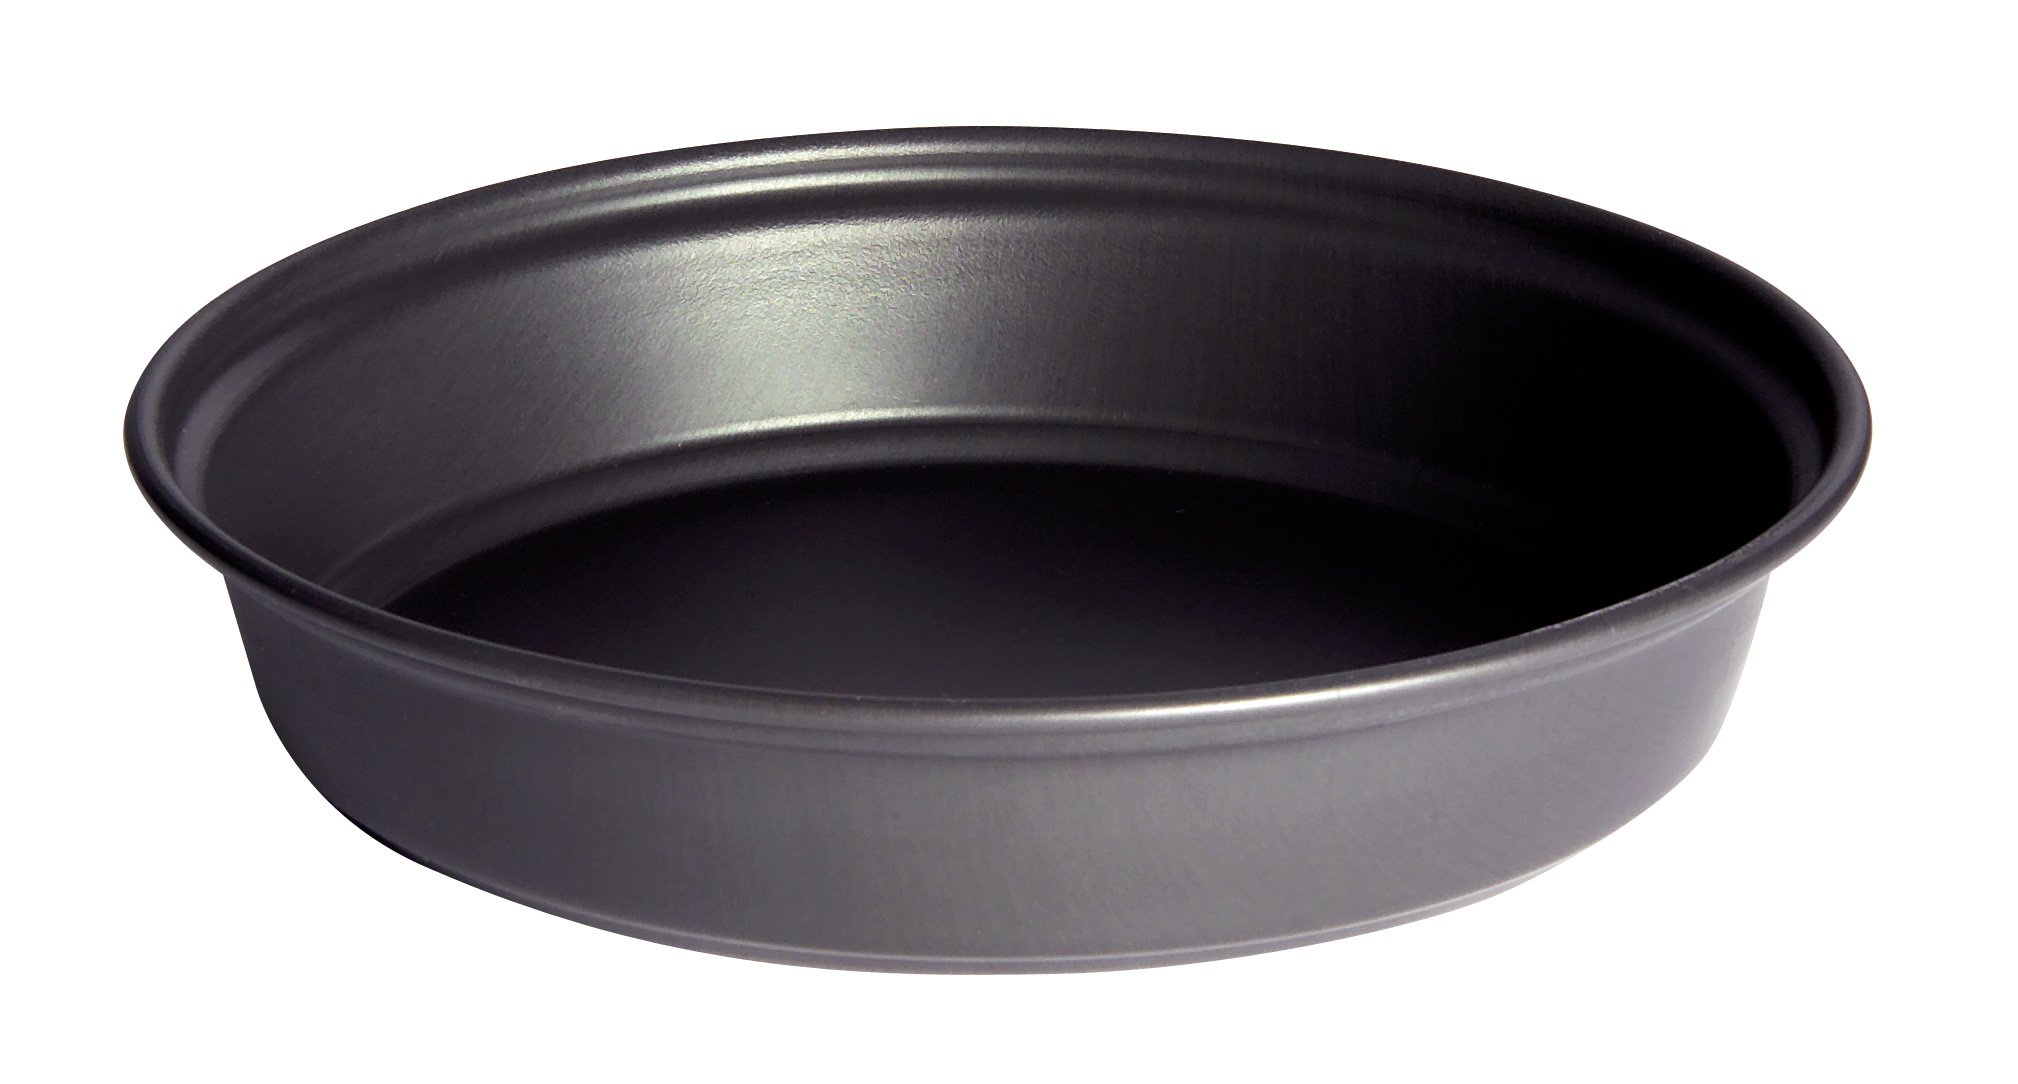 Nordisk dishes titanium plate by Nordisk (Image #1)